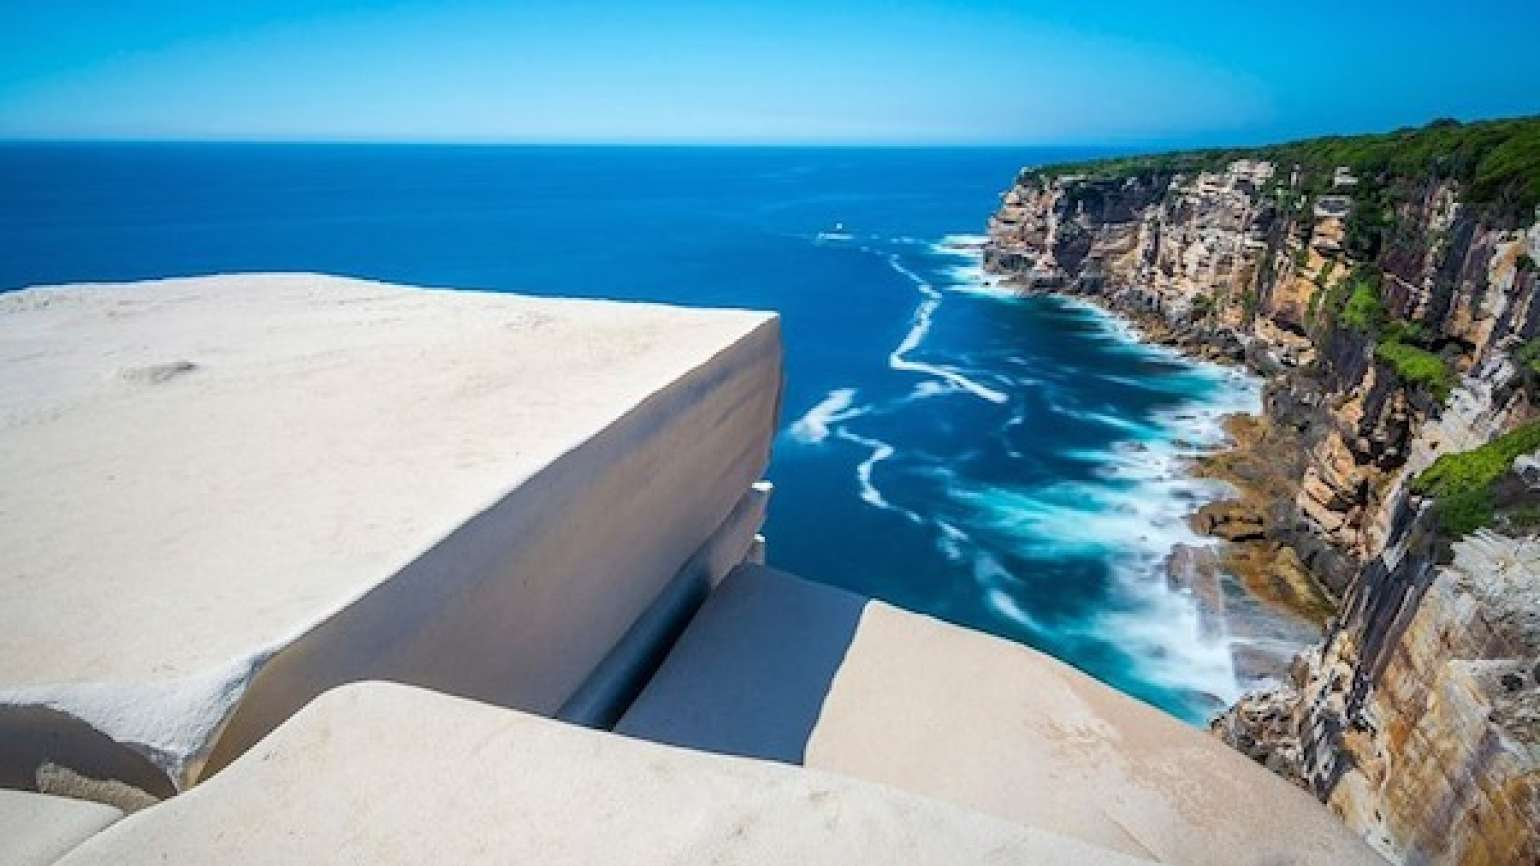 The wonder  of The Wedding Cake Rock in New South Wales, Australia.